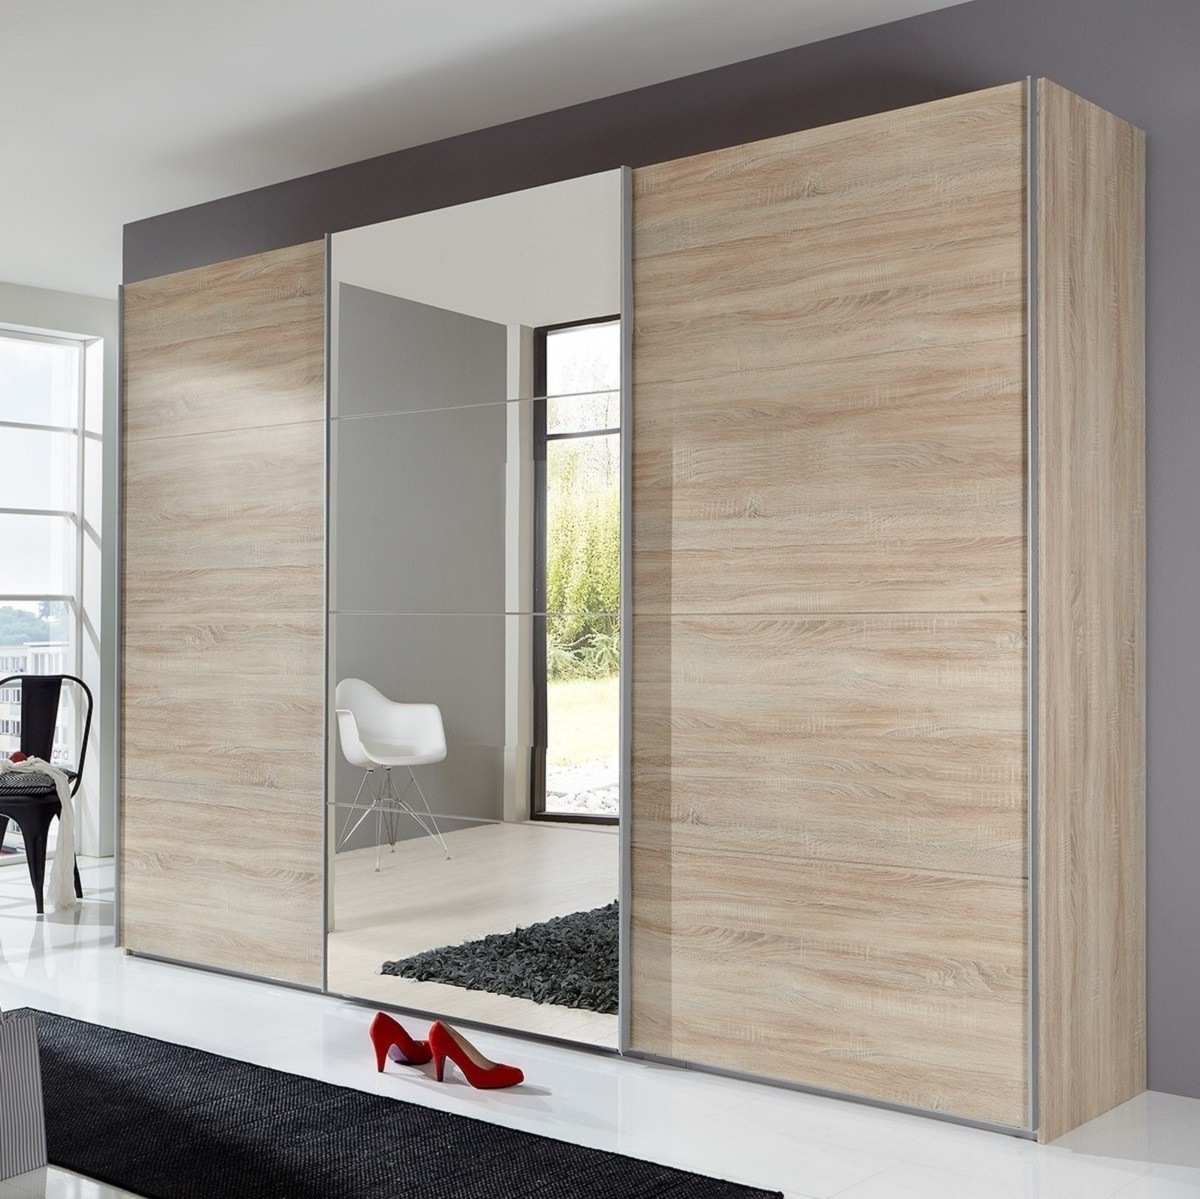 Sliding Wardrobe Doors Oak Mirror • Sliding Doors Design Pertaining To 2018 3 Door Mirrored Wardrobes (View 13 of 15)